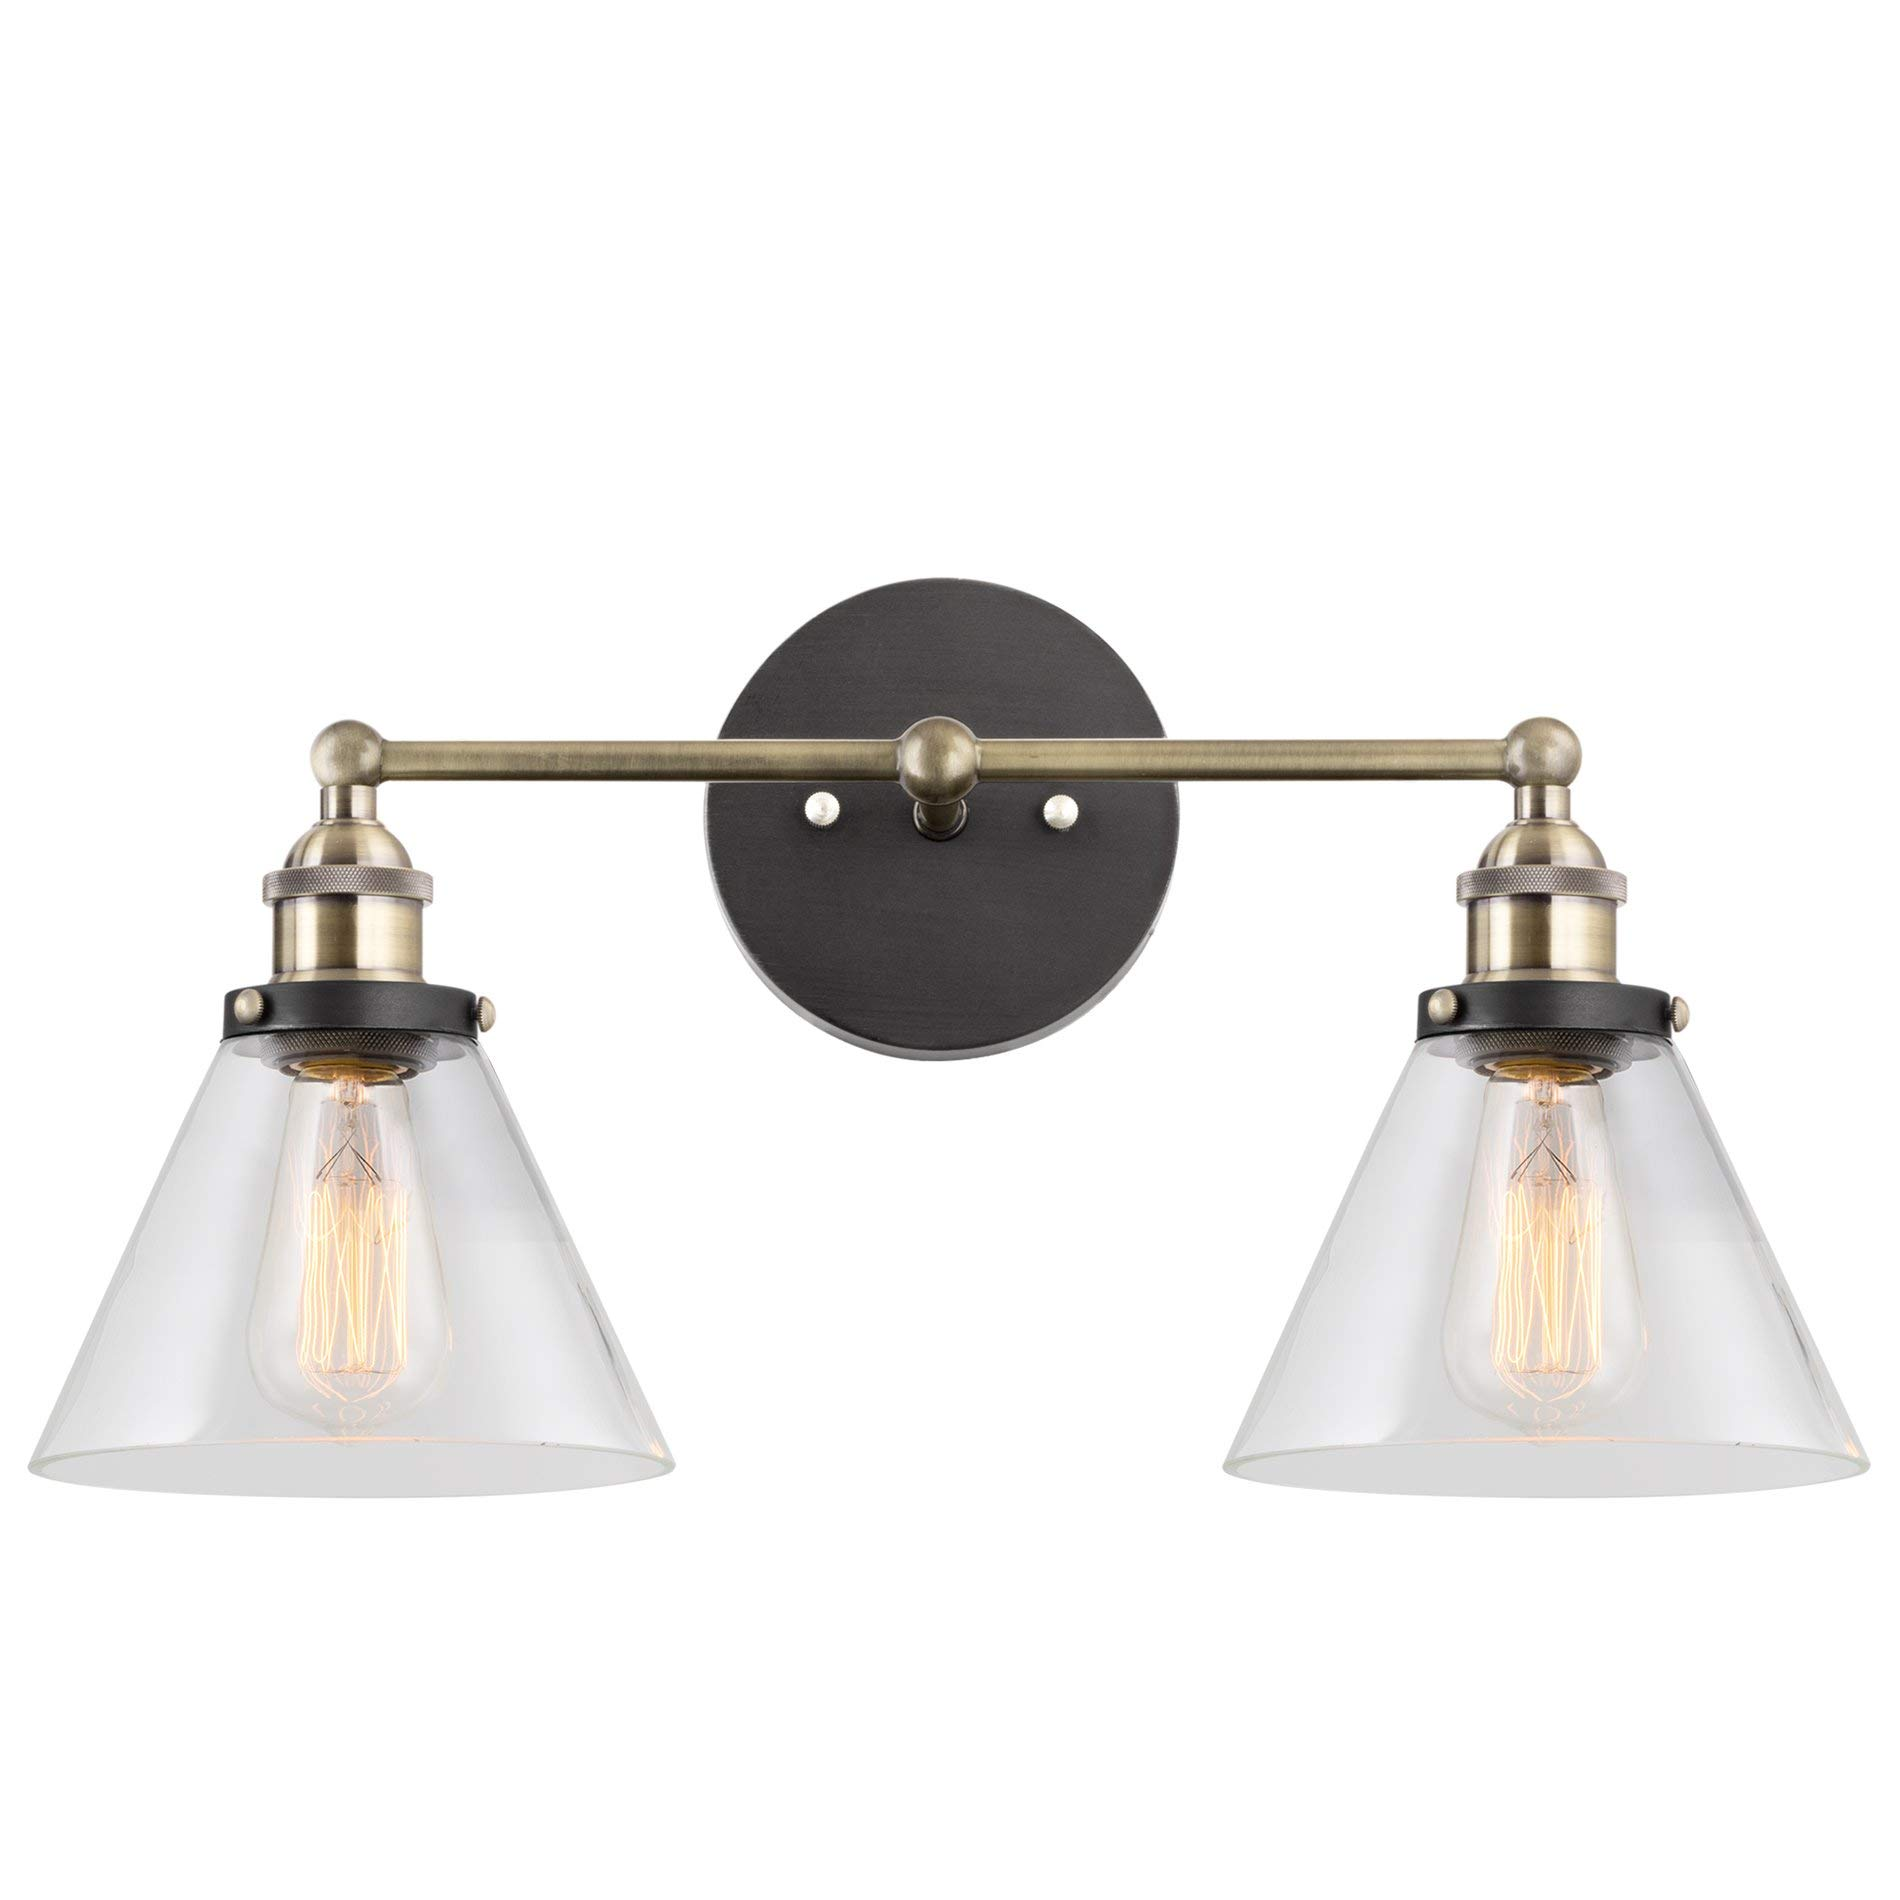 Kira Home Indie 19'' Mid-Century Industrial Edison 2-Light Bathroom/Vanity Wall Sconce + Clear Glass Shades, Antique Brass Accents, Brushed Matte Black Finish by Kira Home (Image #1)